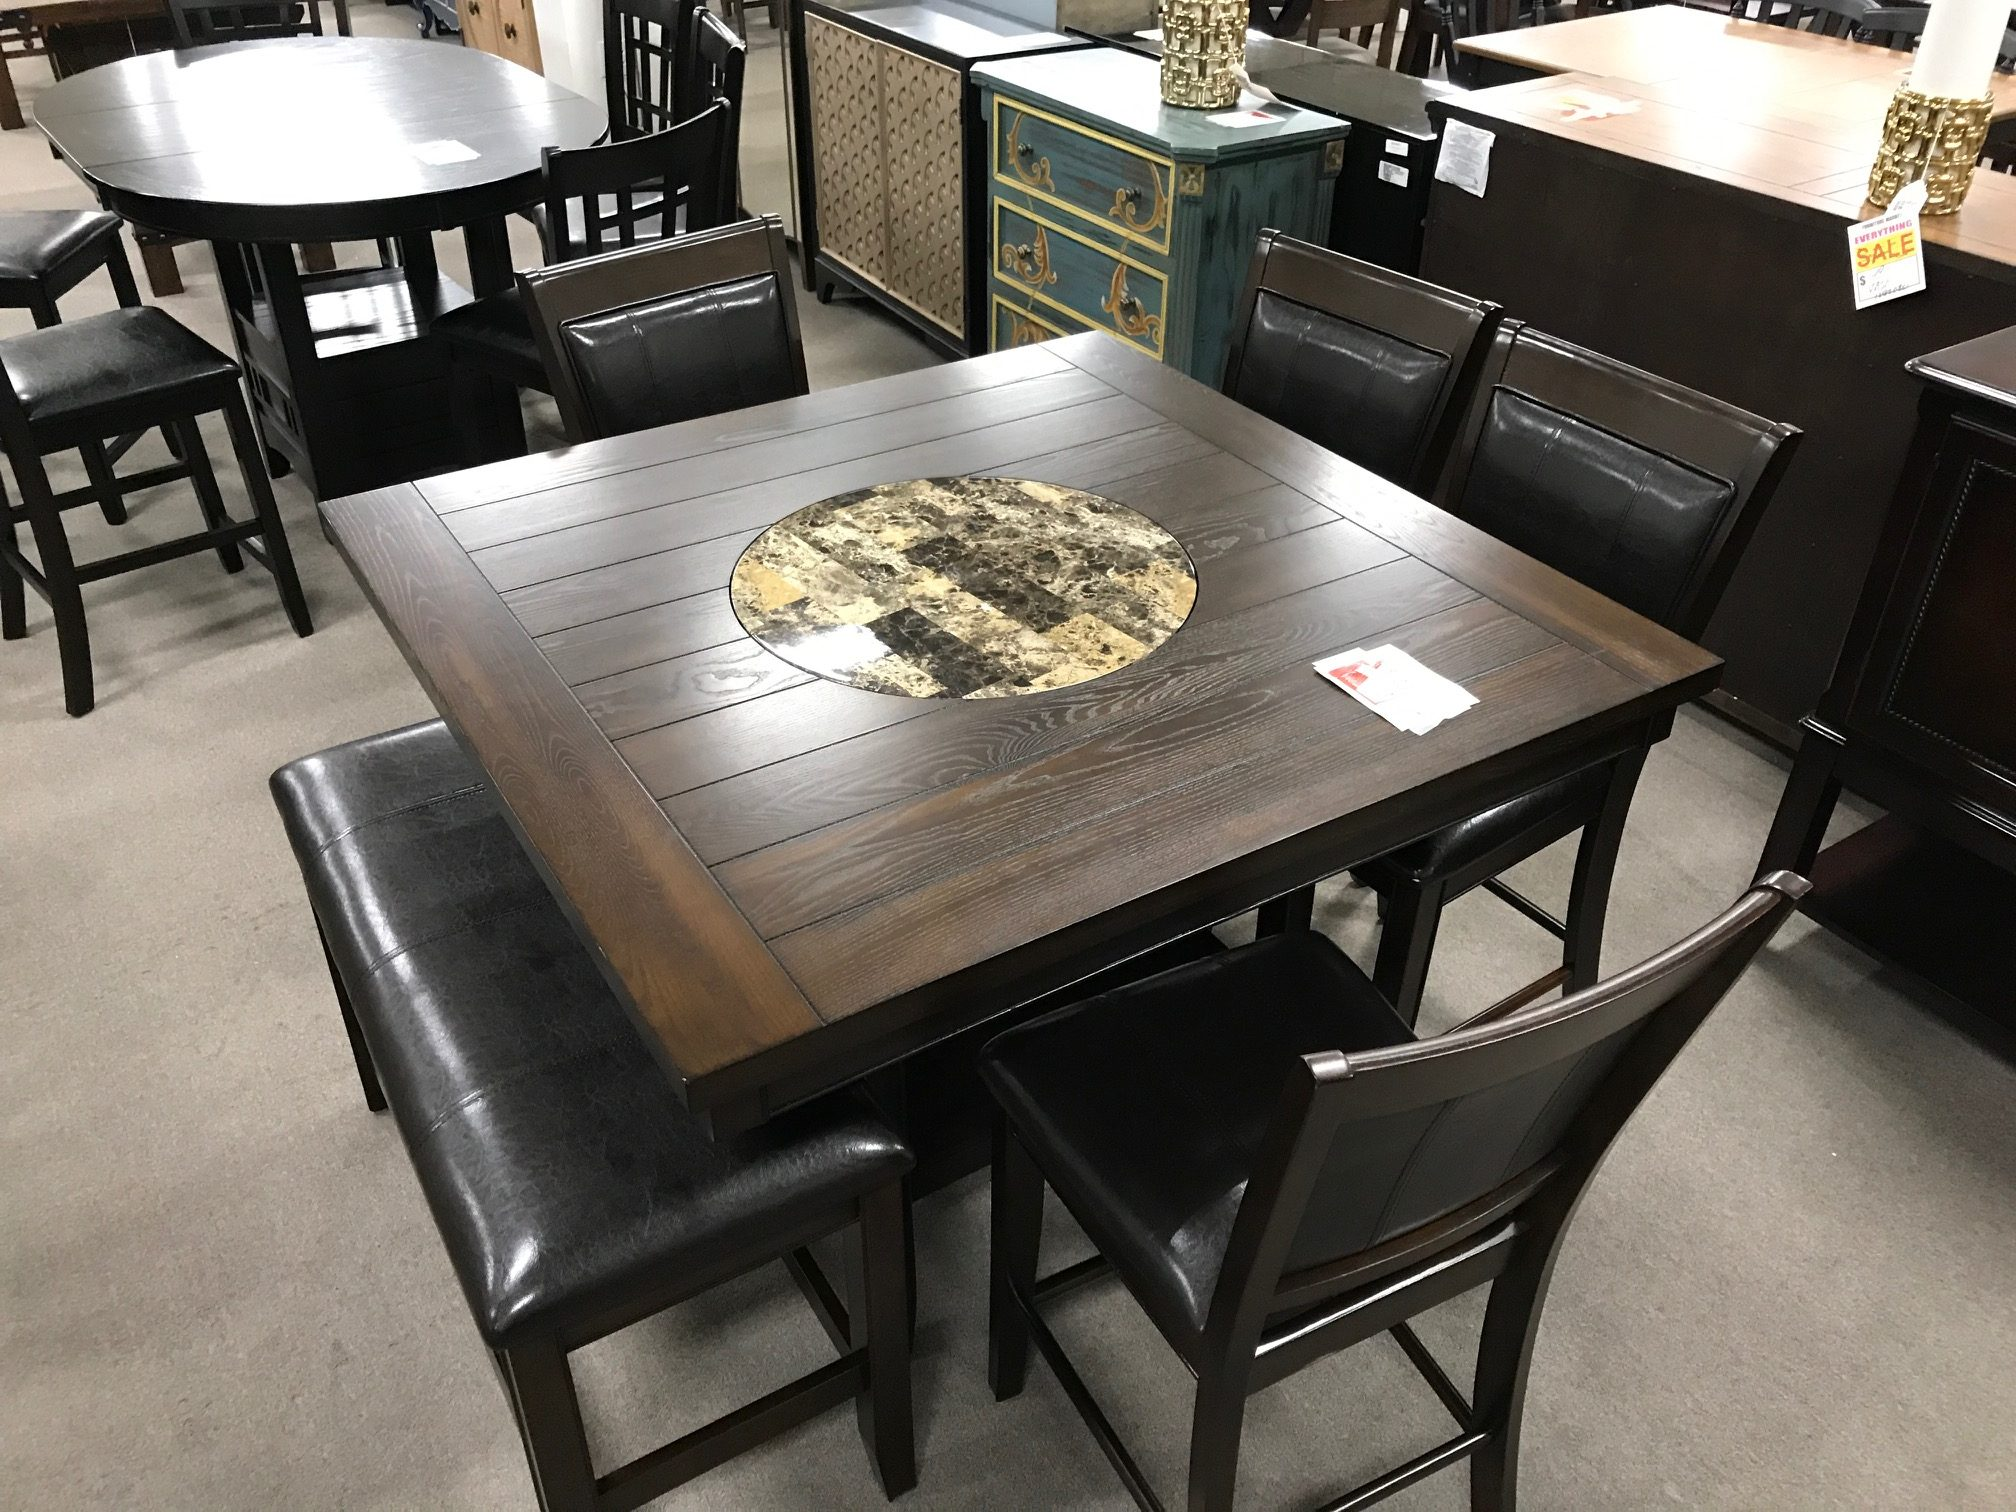 Furniture Market Dining Table With Stools And Bench Heavner Furniture Market